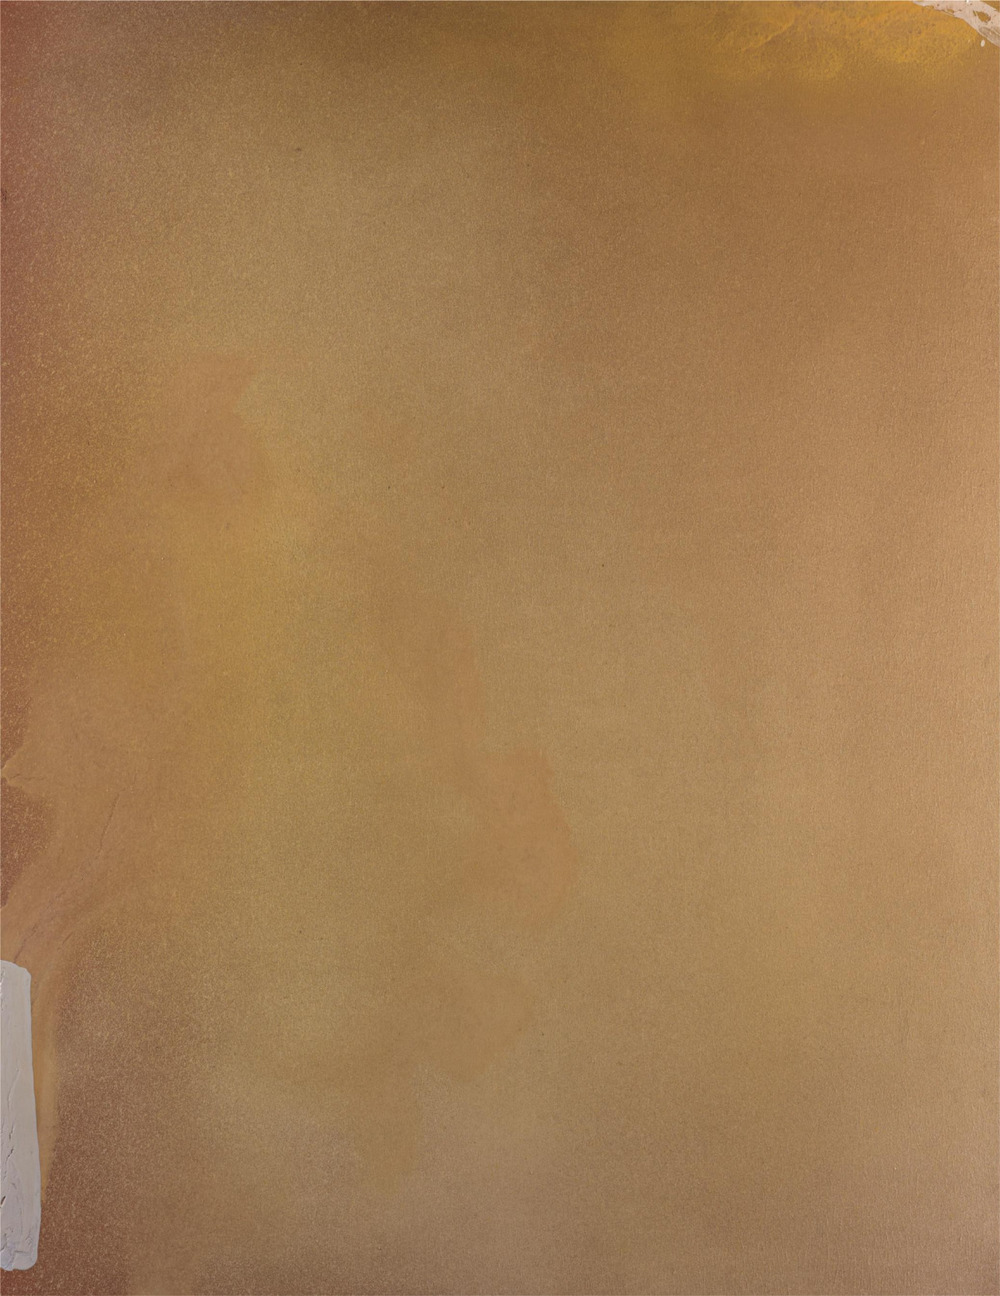 006b Jules Olitski Her Walk, 1971 Acrylic on canvas 234 × 181 cm.jpg